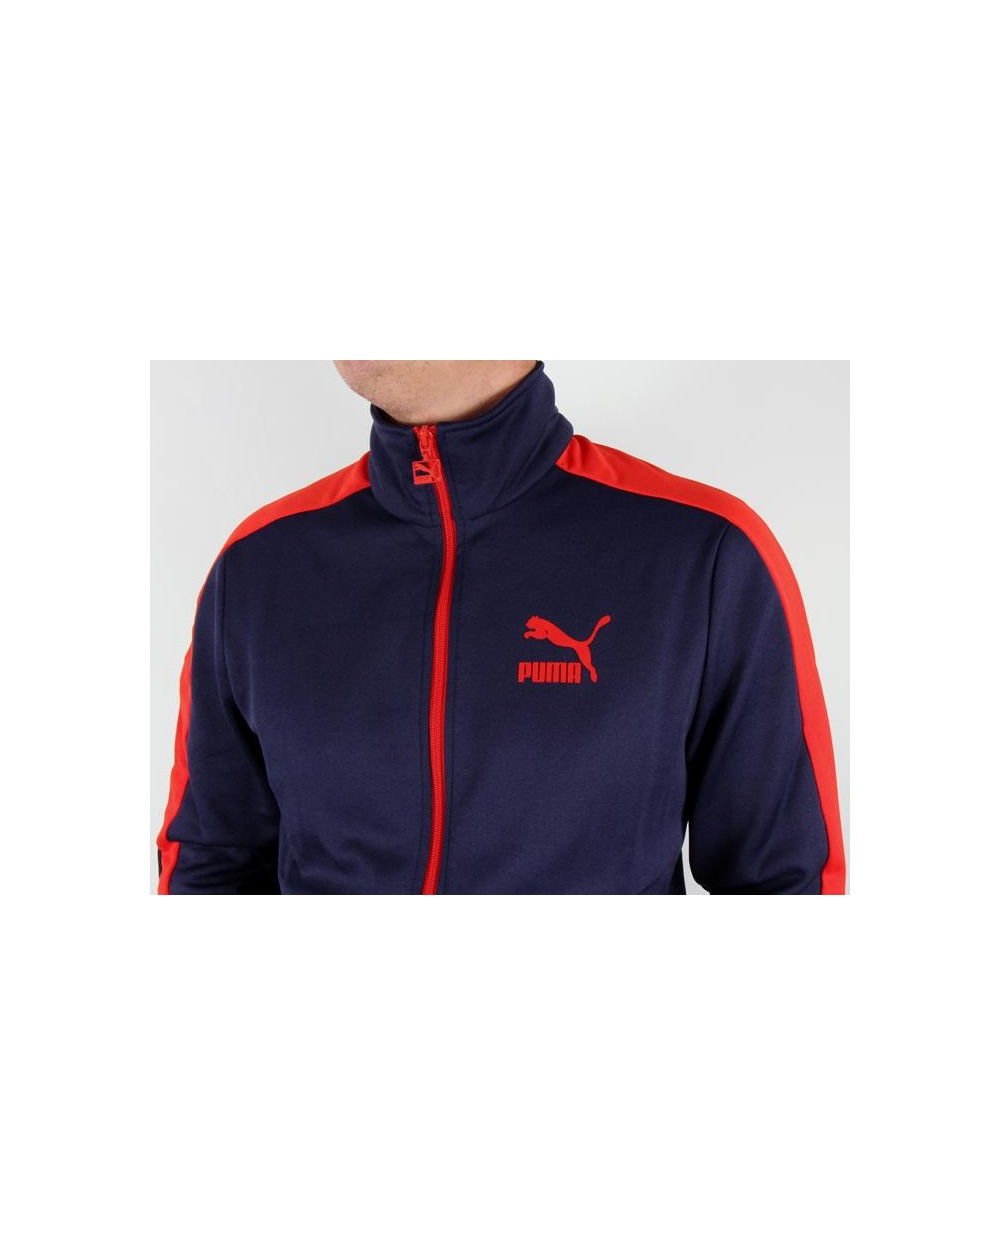 c51dccf8 Puma T7 Track Top Navy/red